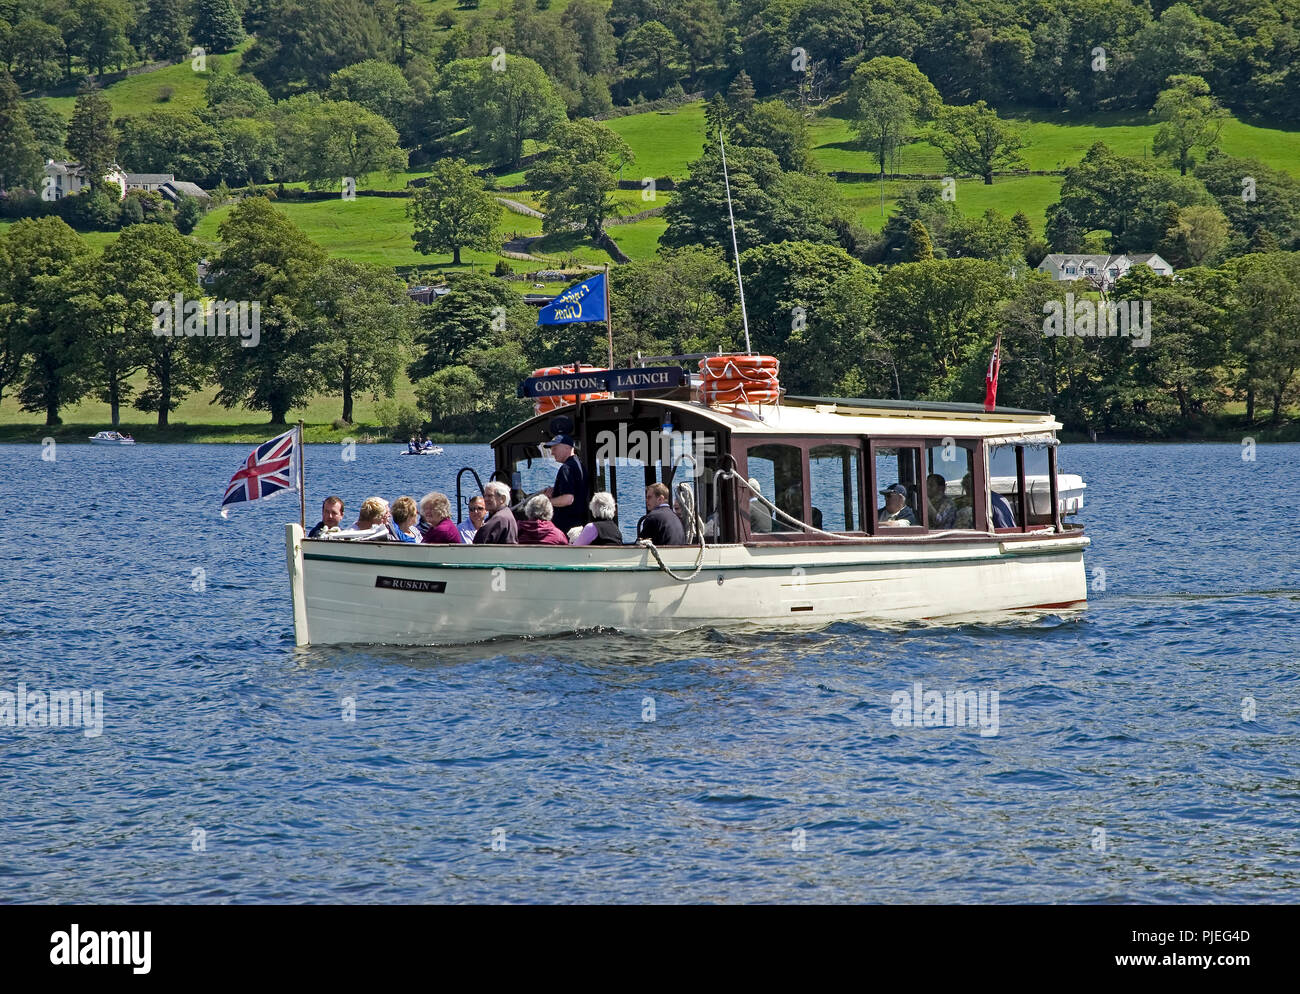 Ferry 'Ruskin', powered by solar energy, on Coniston Water - Stock Image